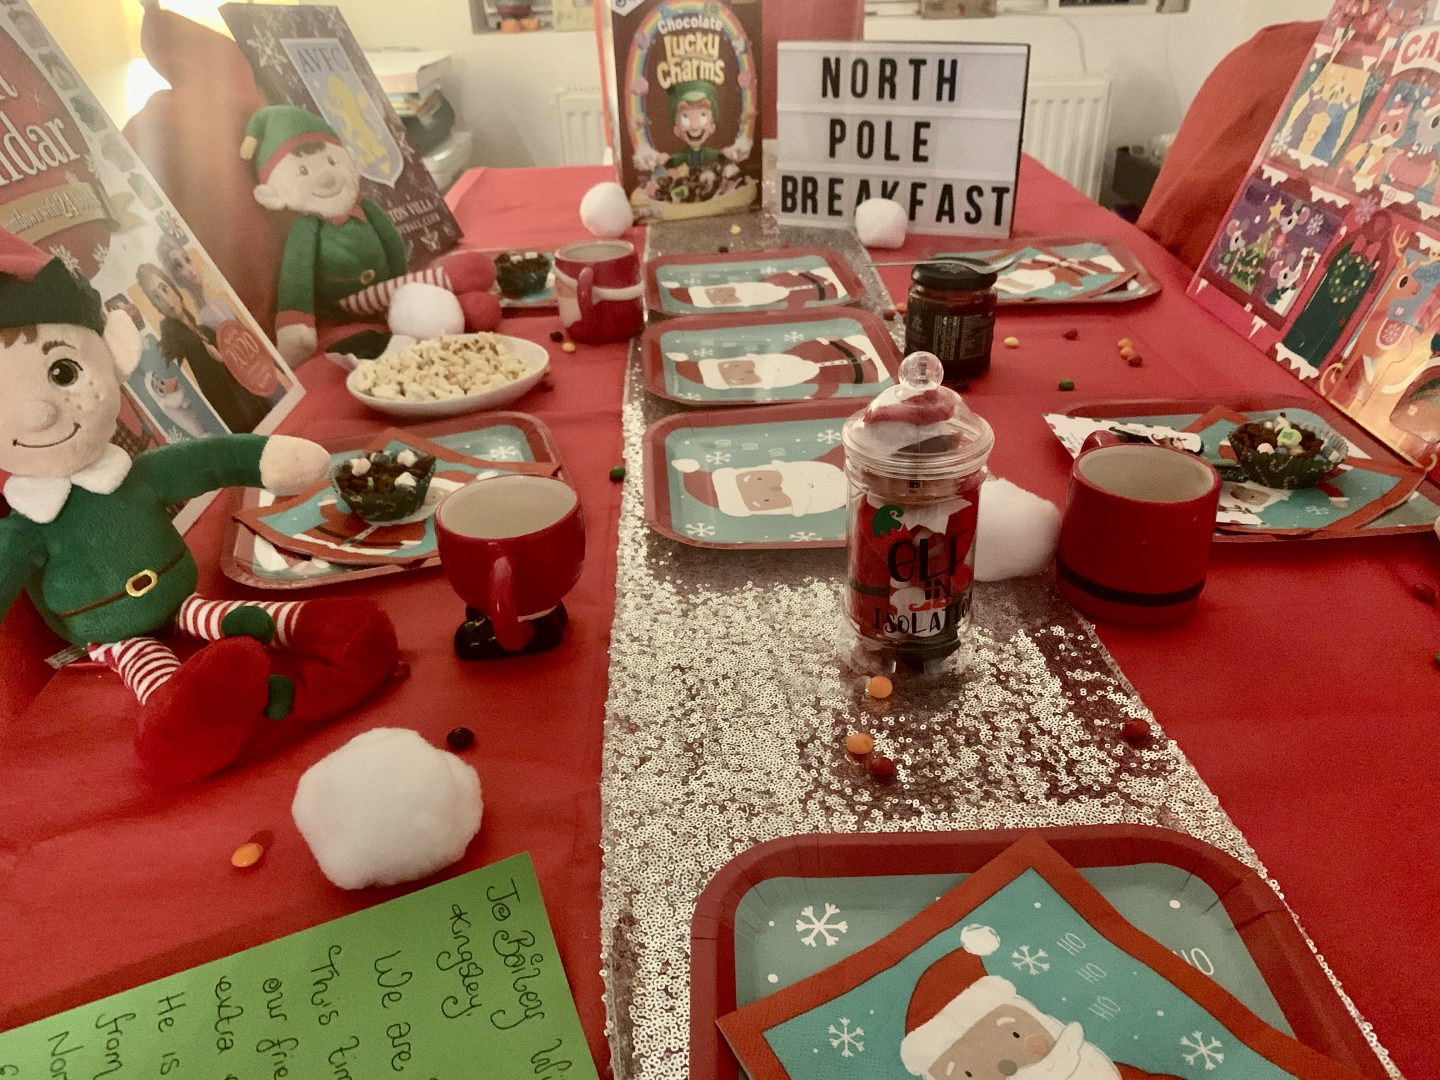 Finished look with food, sweets, decorations and table ware for our north pole breakfast